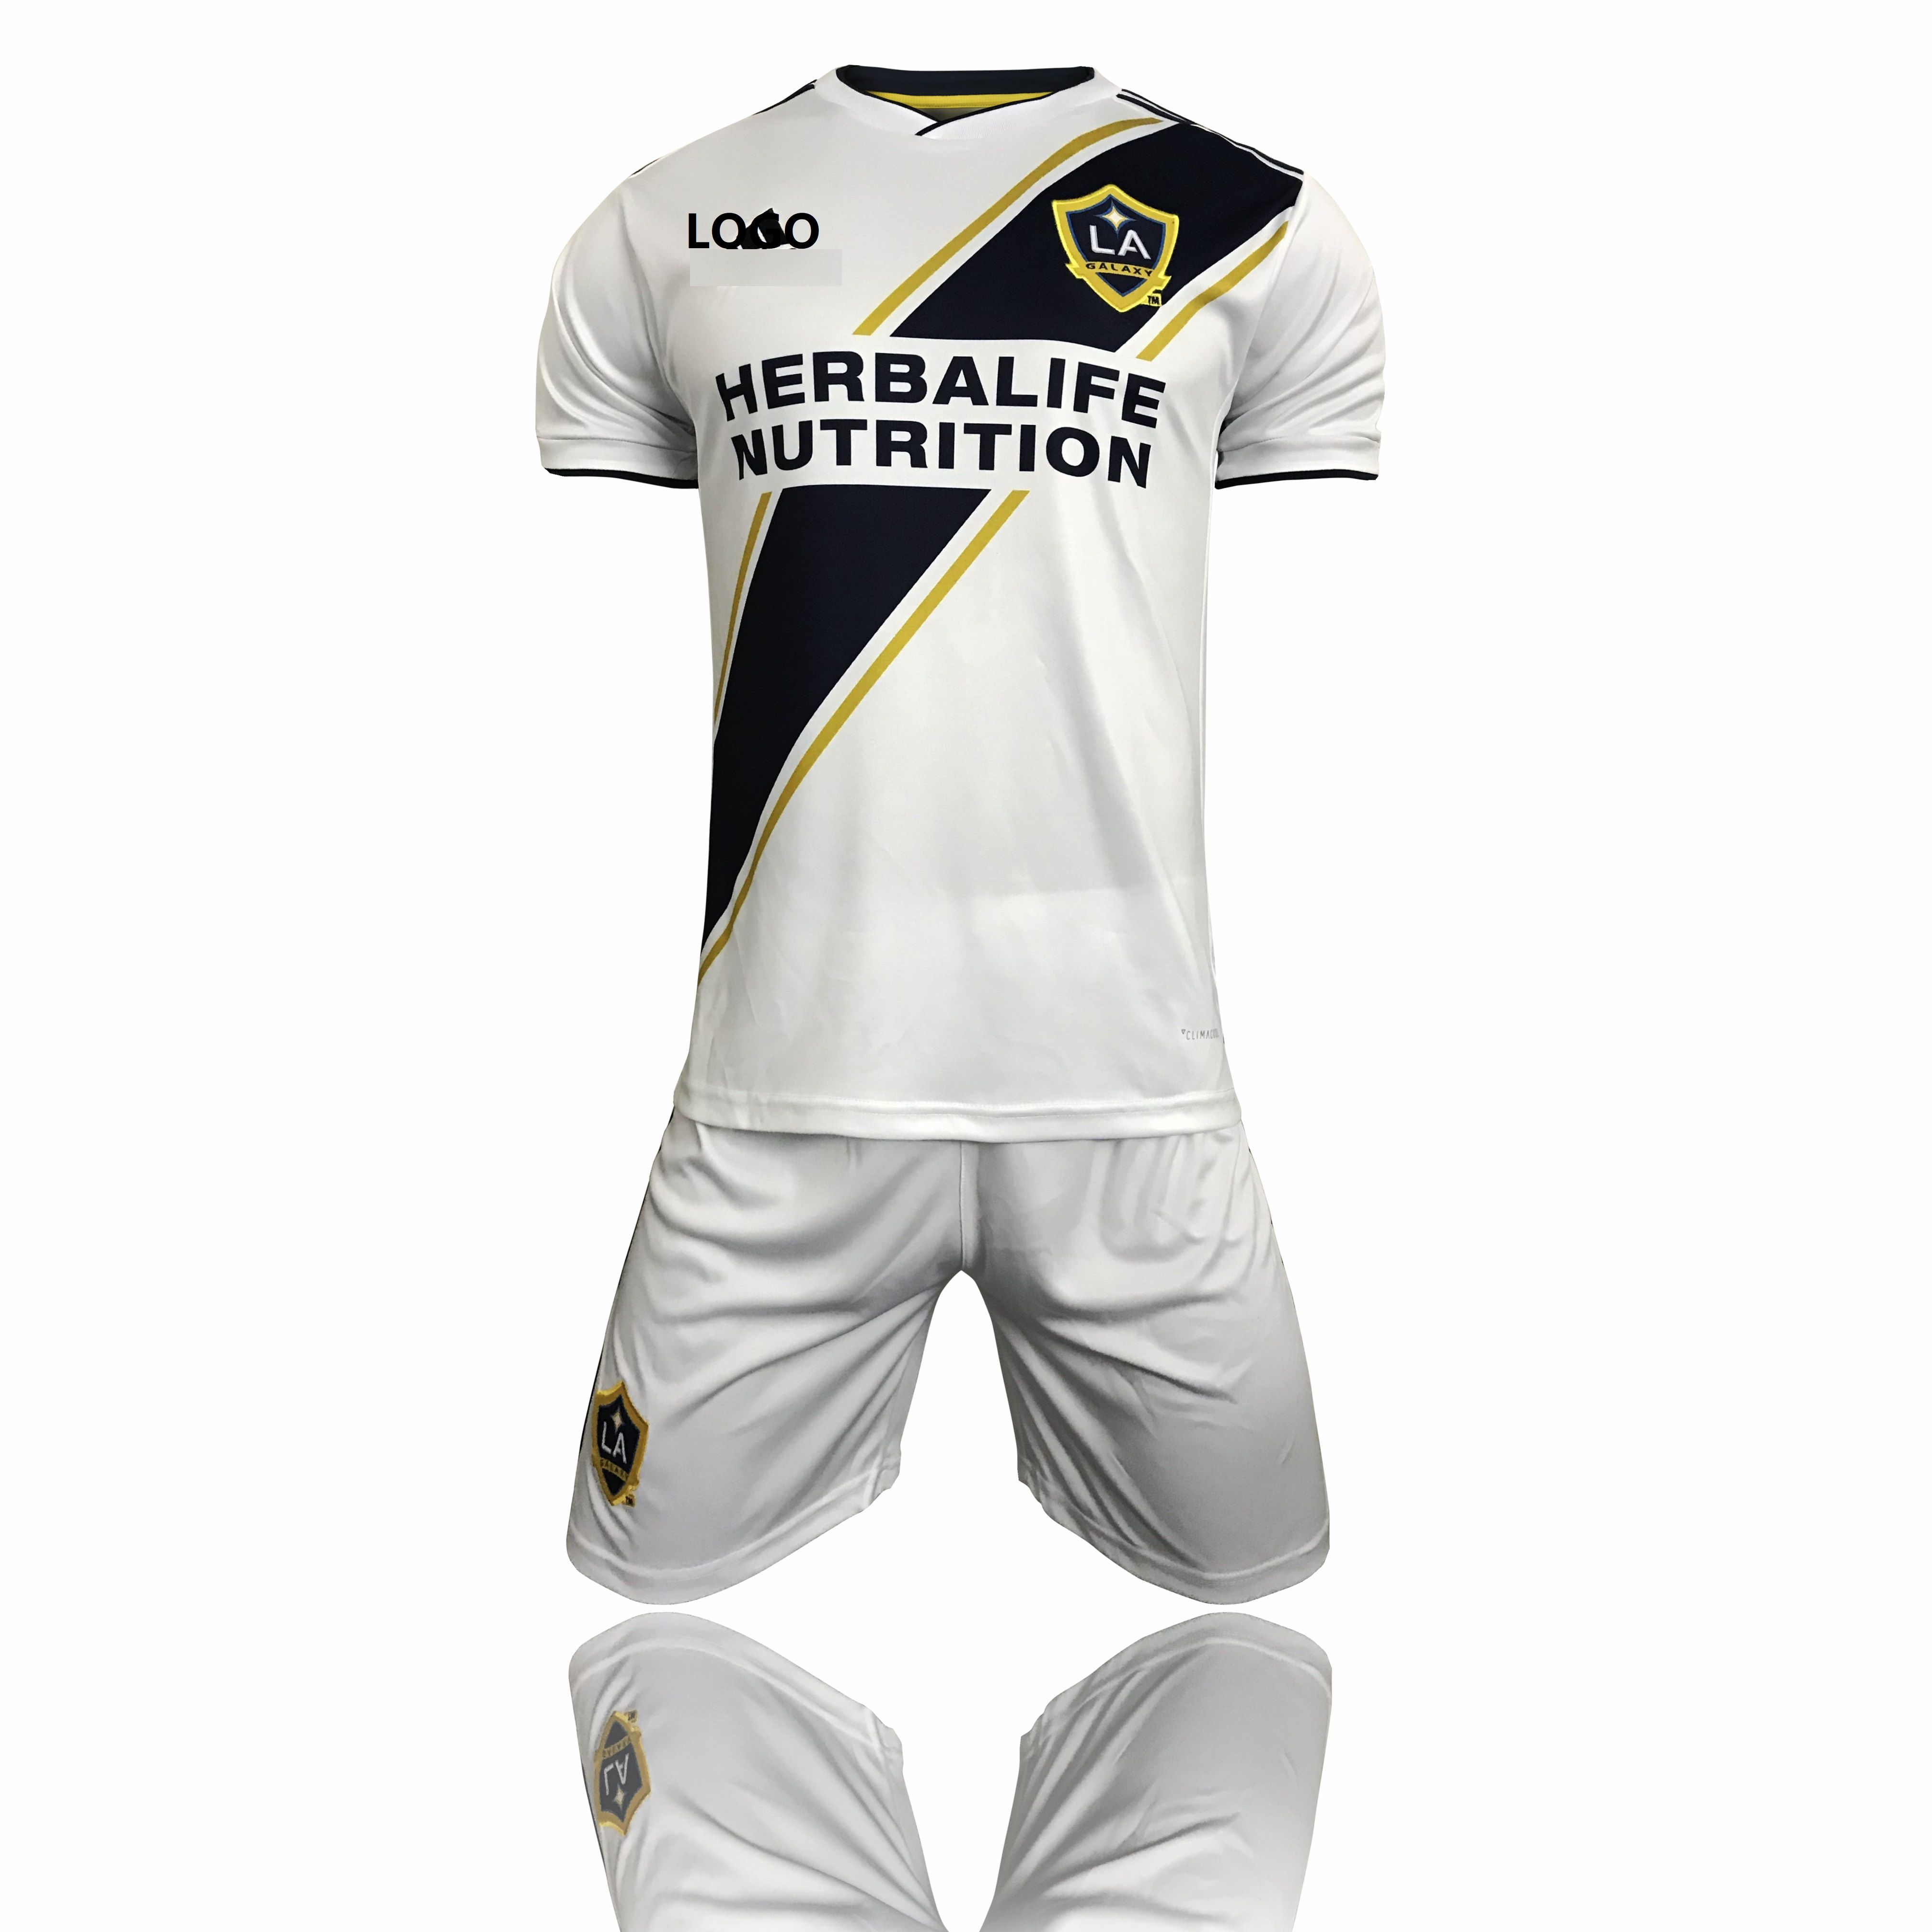 eb9a183b6 2018 Adult LA GALAXY Home Jersey Kits Soccer Uniform